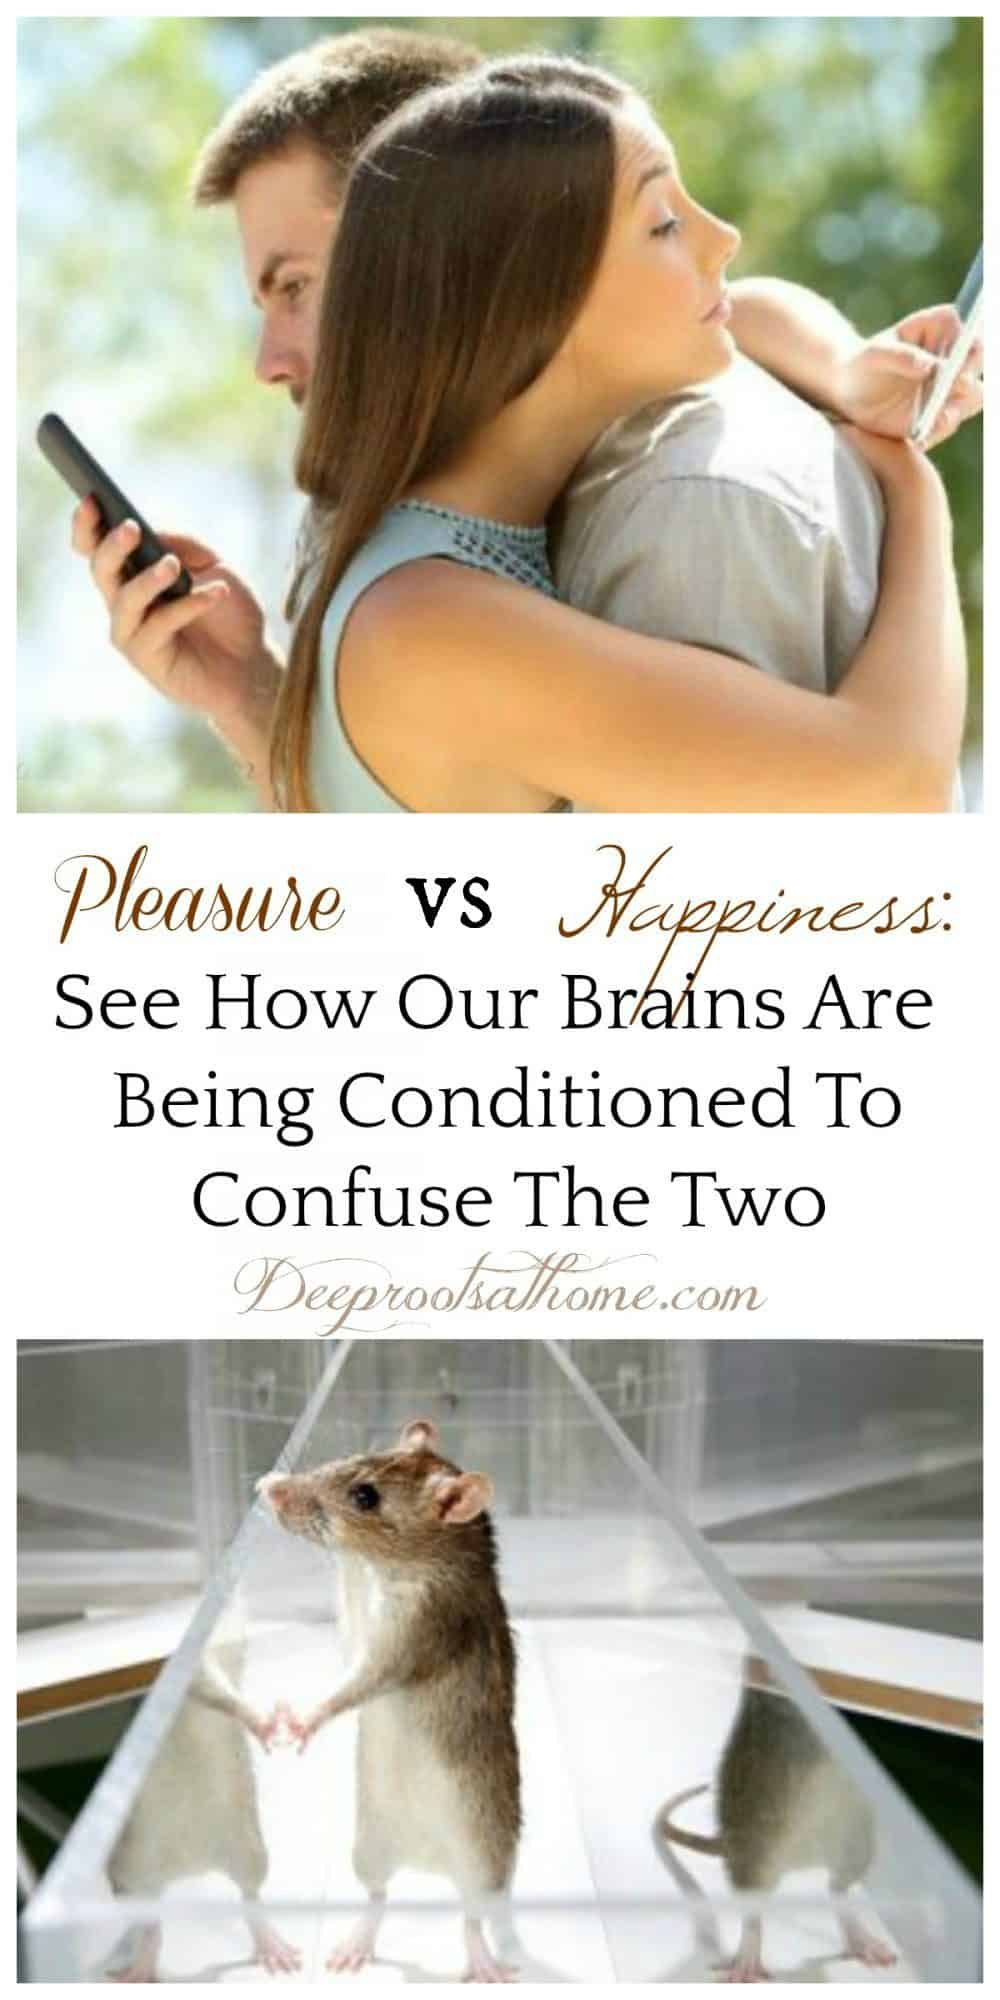 Pleasure Vs Happiness: See How Our Brains Are Being Conditioned To Confuse The Two, Google, product manager, Tristan Harris, apps, social media, phone, iPhone, tech companies, programming, brain hacking, family, parents, parenting, habit, Silicon Valley, slot machines, hijack, rewards, maze, design, products, pull a lever, Ramsey Brown, computer, smartphones, science, virtual reality, boring, toys, friends, conditioning, contentment, confused, satisfaction, money, clicks, Robert Lustig, Hacking of the American Mind, corporate takeover, substances, meaningful, purpose, taking, giving, video, technology, refined sugar, dopamine, serotonin, addiction, craving, emotions, neurotransmitters, downregulate, hit, rush, depression, happy, stress hormone, cortisol, dumbed-down, broke, depressed, multi-tasking, conversations, interruptions, transactions, shooting up, numbing, prefrontal cortex, addiction chemical, healthy relationships, obcessive, behavior, rats in maze, stressed, internet, variable ratio schedule, human brain, kids, children, destroying, loss of focus, weakening, substitute, Romans 15:13, connectedness, hope, joy,